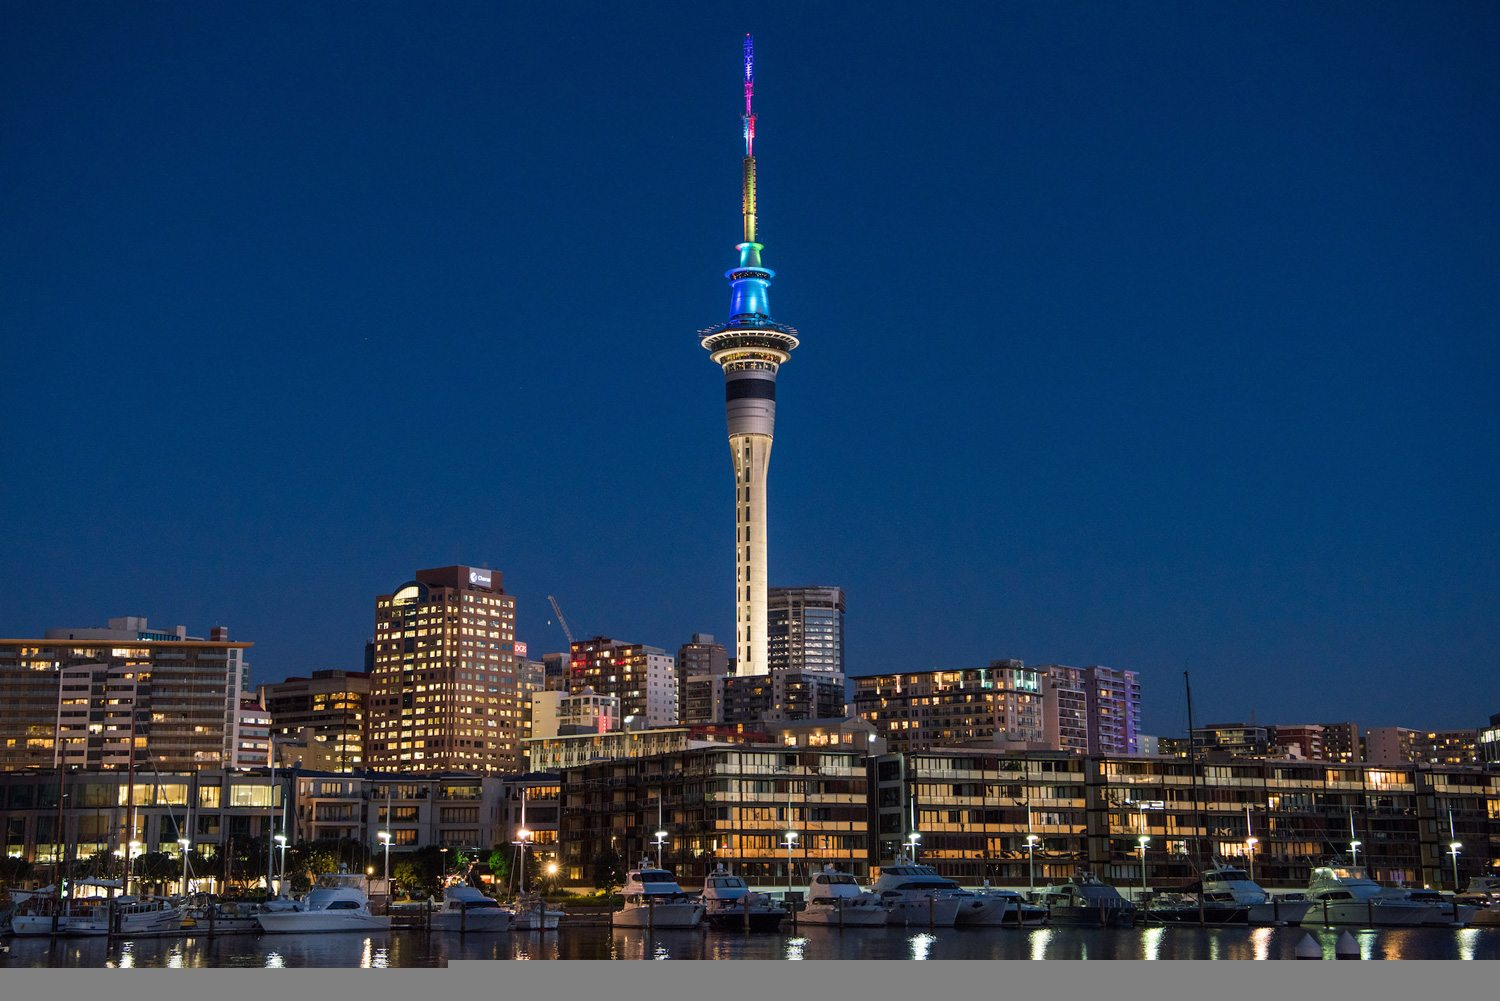 sky tower stands tall for rainbow community express magazine. Black Bedroom Furniture Sets. Home Design Ideas